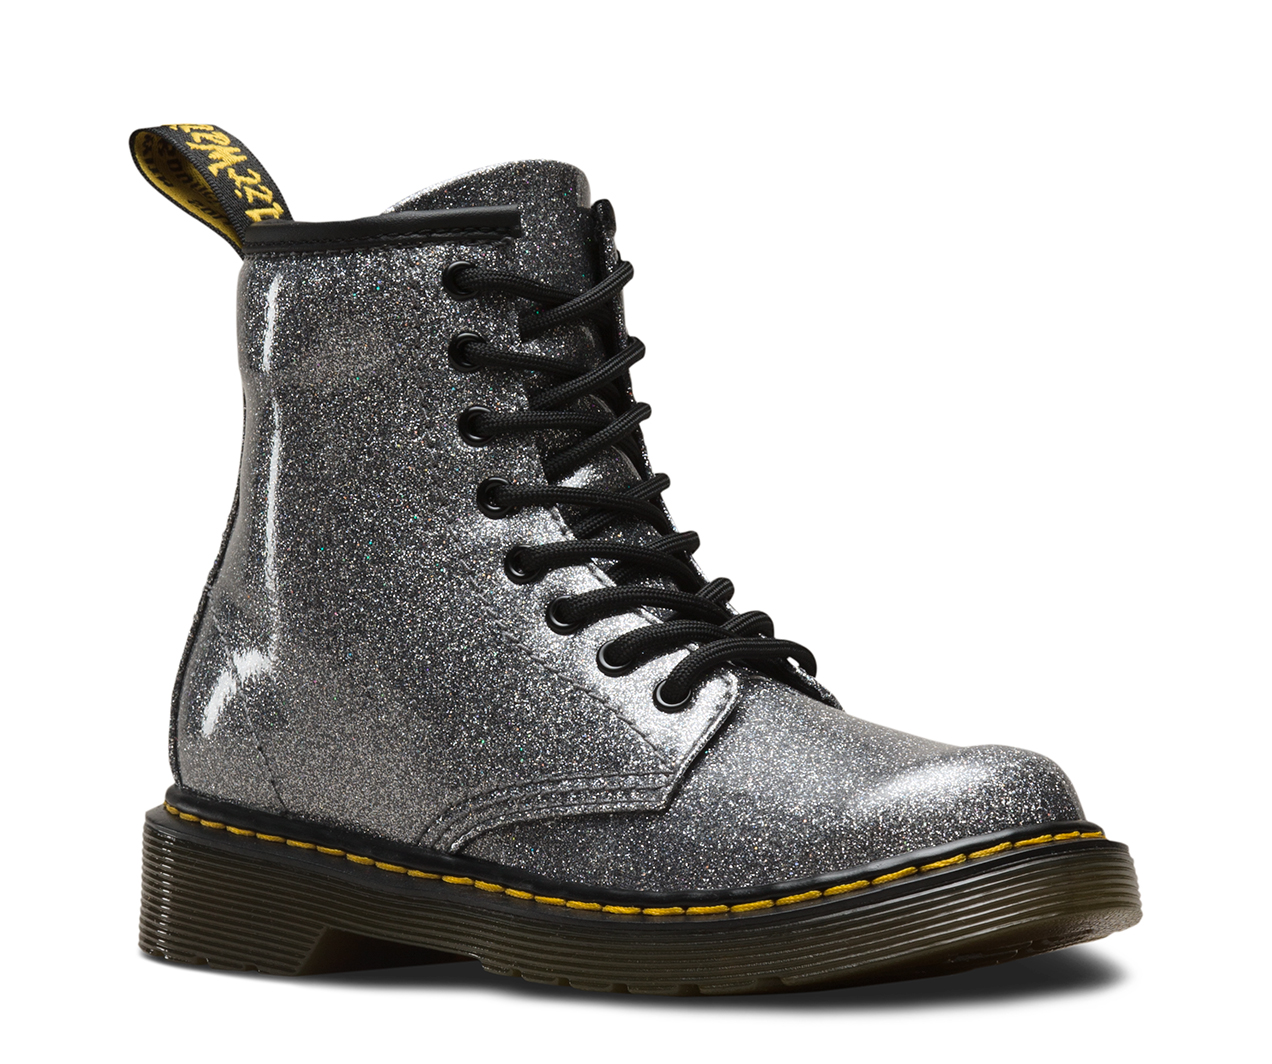 6a8d71e78db35 Dr Martens Delaney 1460 Gun Metal Glitter Boots - Kids Got Sole